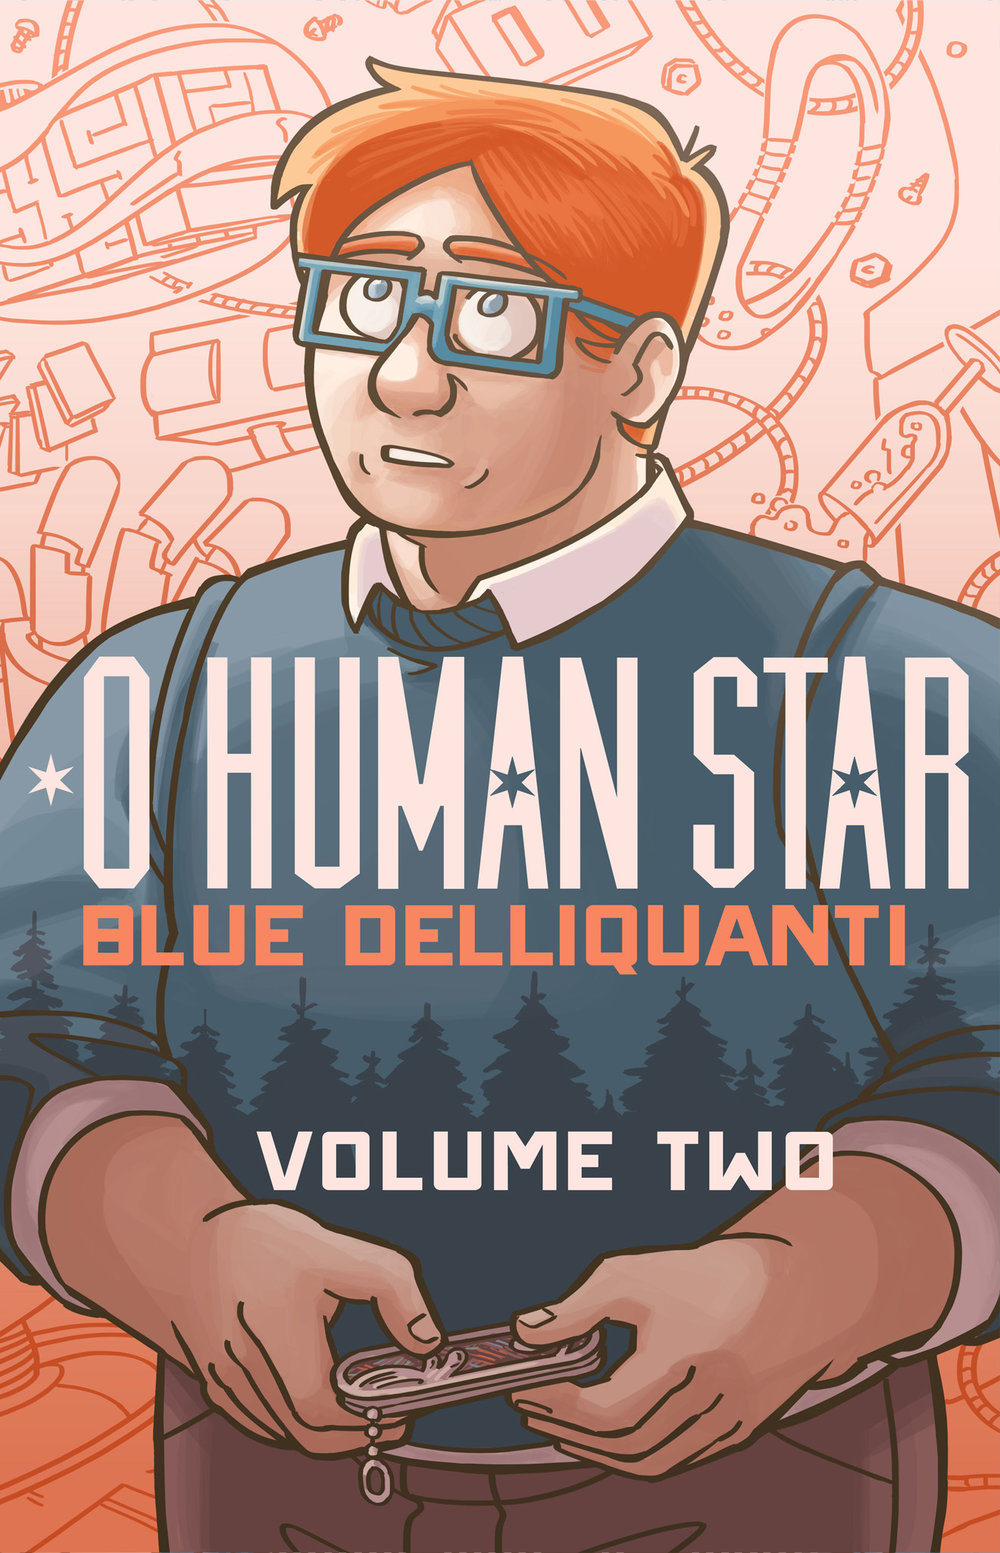 - O HUMAN STAR - Volume Two(2017)Alastair Sterling was the inventor who sparked the robot revolution. And because of his sudden death, he didn't see any of it.That is, until he wakes up 16 years later in a robot body that matches his old one exactly. Until he steps outside and finds a world utterly unlike the one he left behind – a world where robots live alongside their human neighbors and coexist in their cities. A world he helped create.Now Al must track down his old partner Brendan to find out who is responsible for Al's unexpected resurrection, but their reunion raises even more questions.Like who the robot living with Brendan is. And why she looks like Al. And how much of the past should stay in the past…